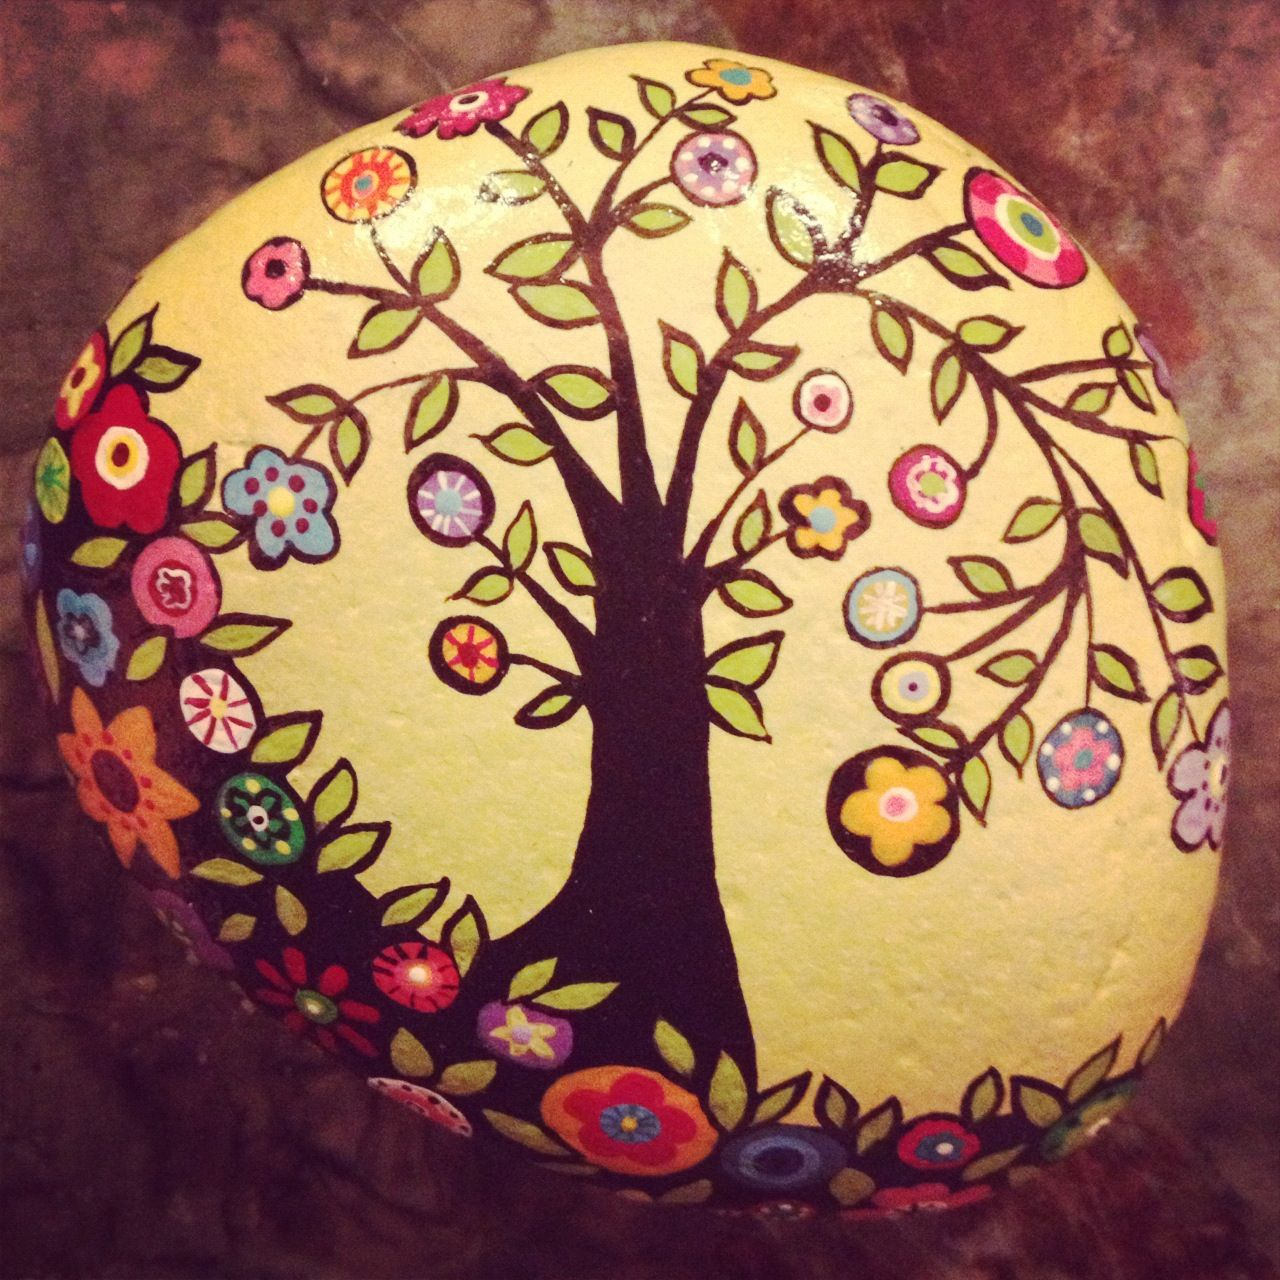 Best 25 hand painted rocks ideas on pinterest stone - Painting rocks for garden what kind of paint ...